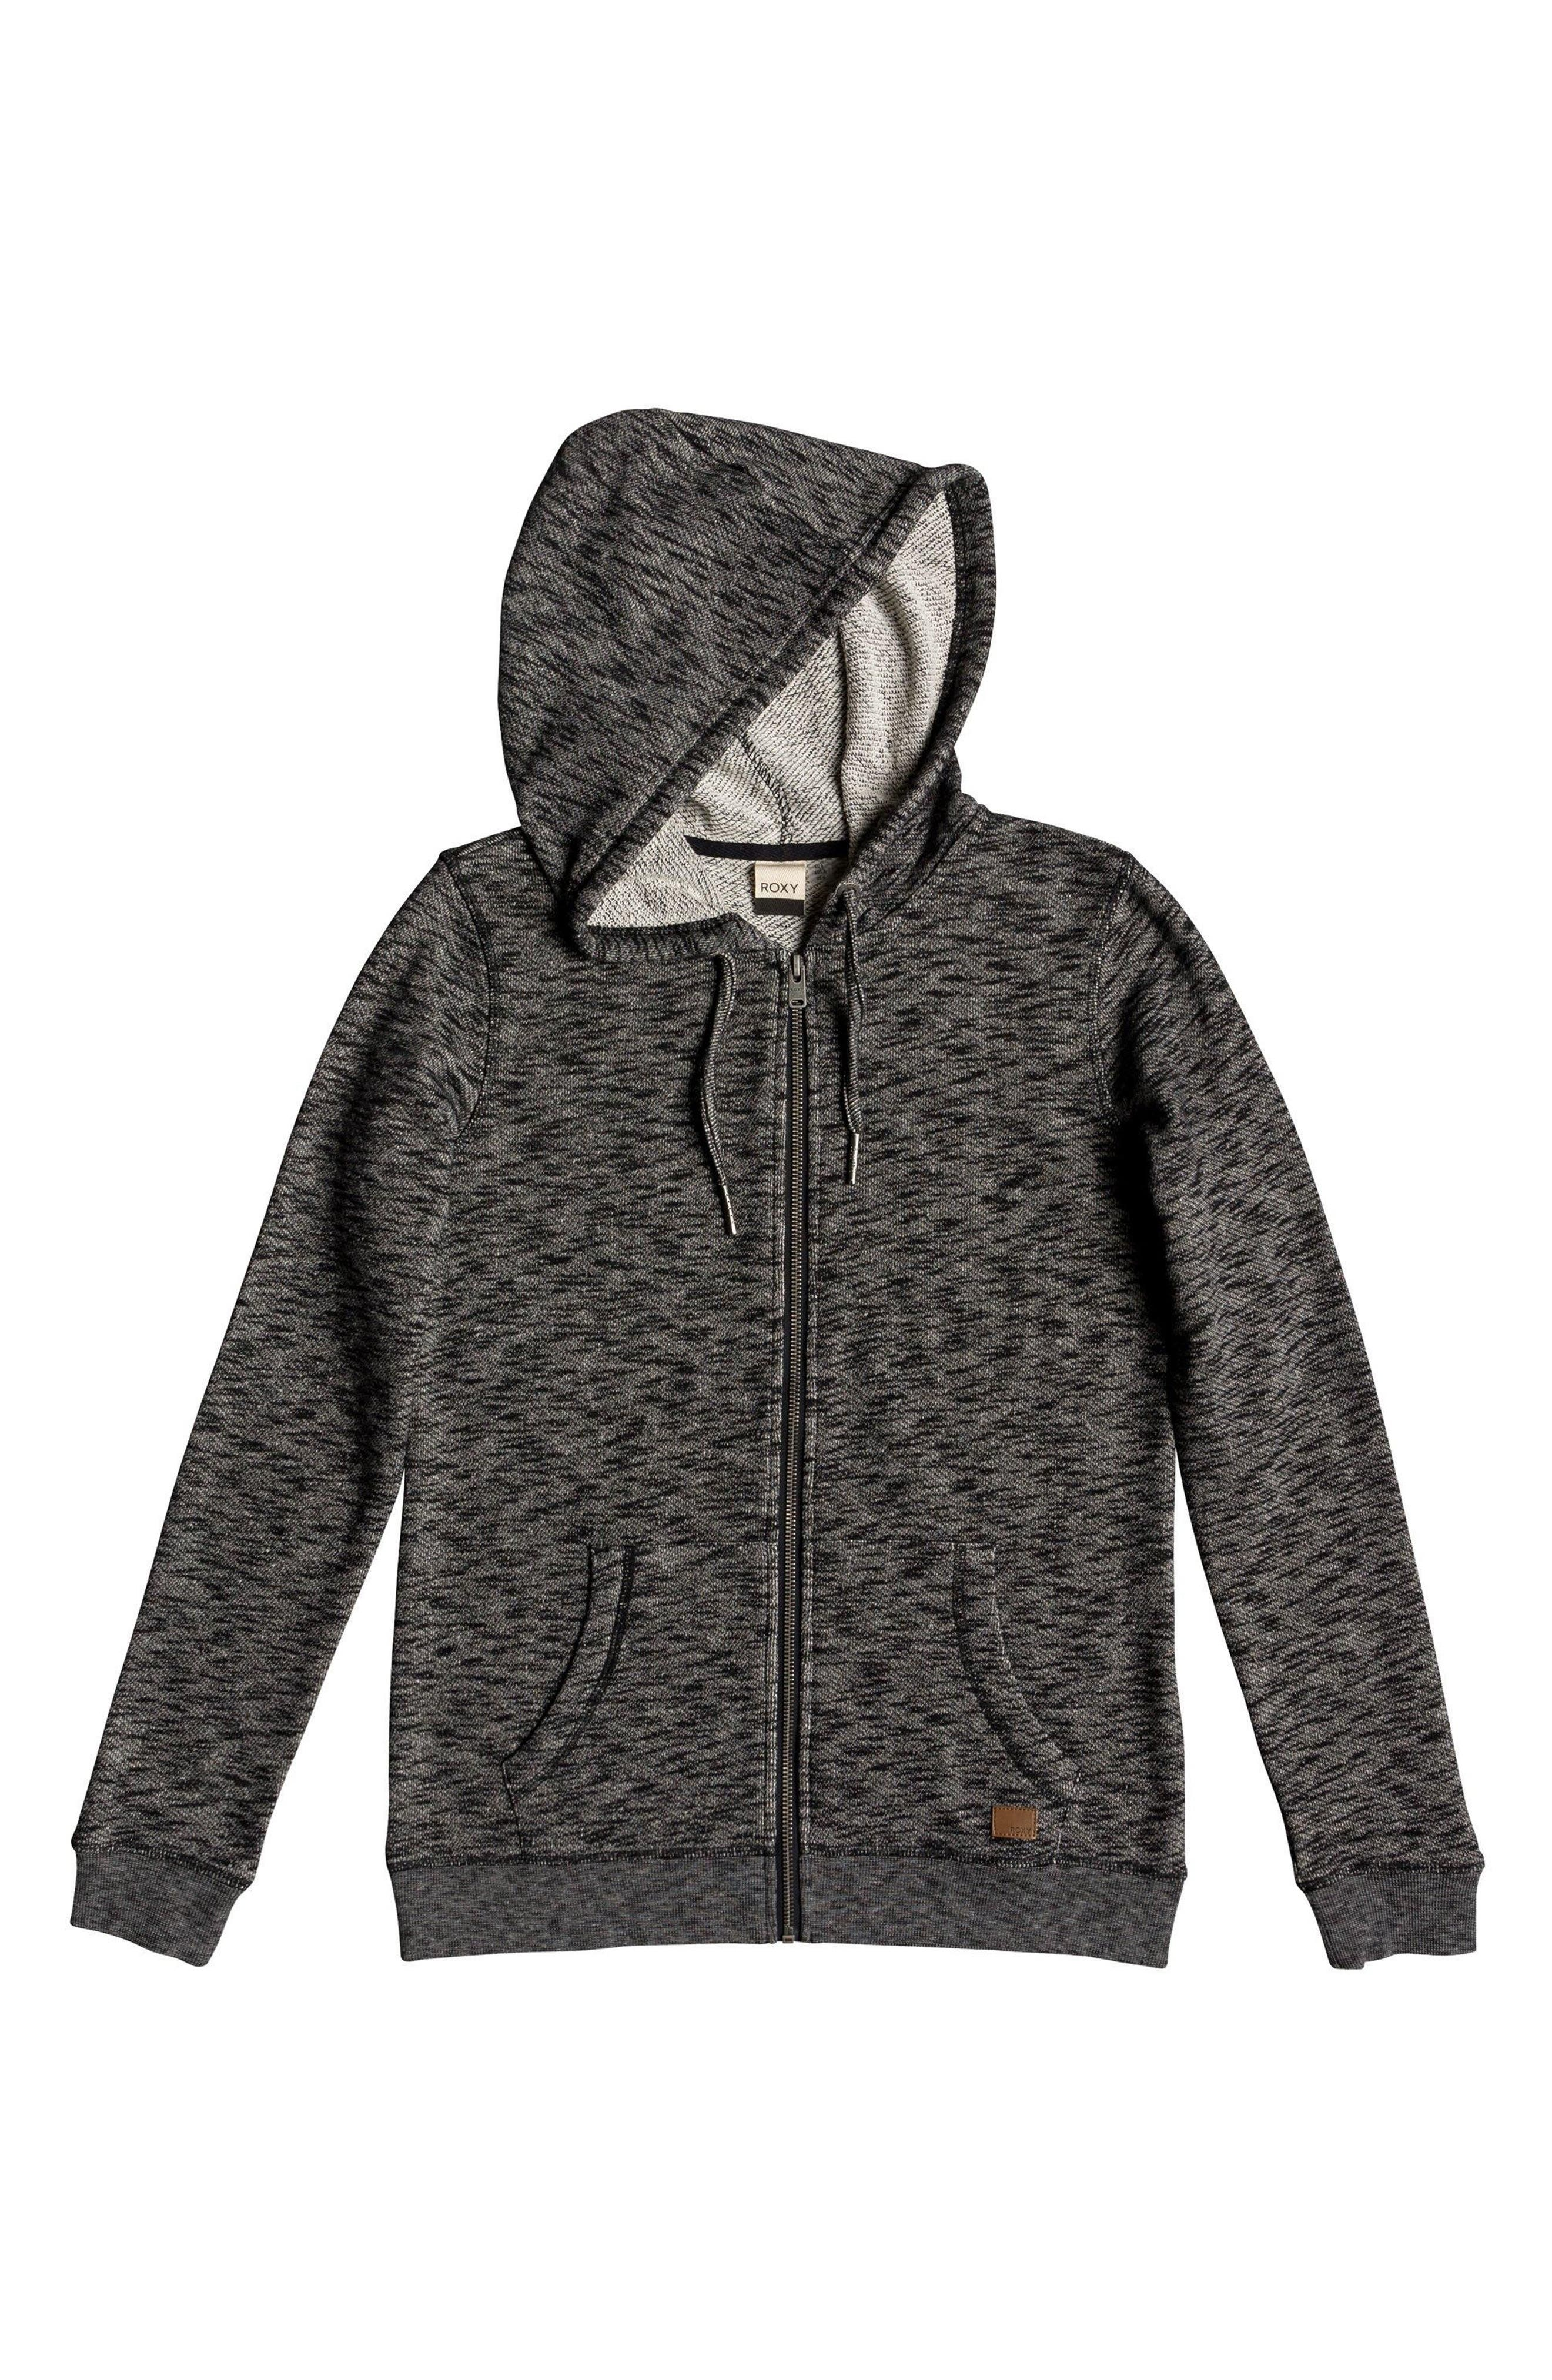 Trippin Hoodie,                             Alternate thumbnail 3, color,                             ANTHRACITE HEATHER